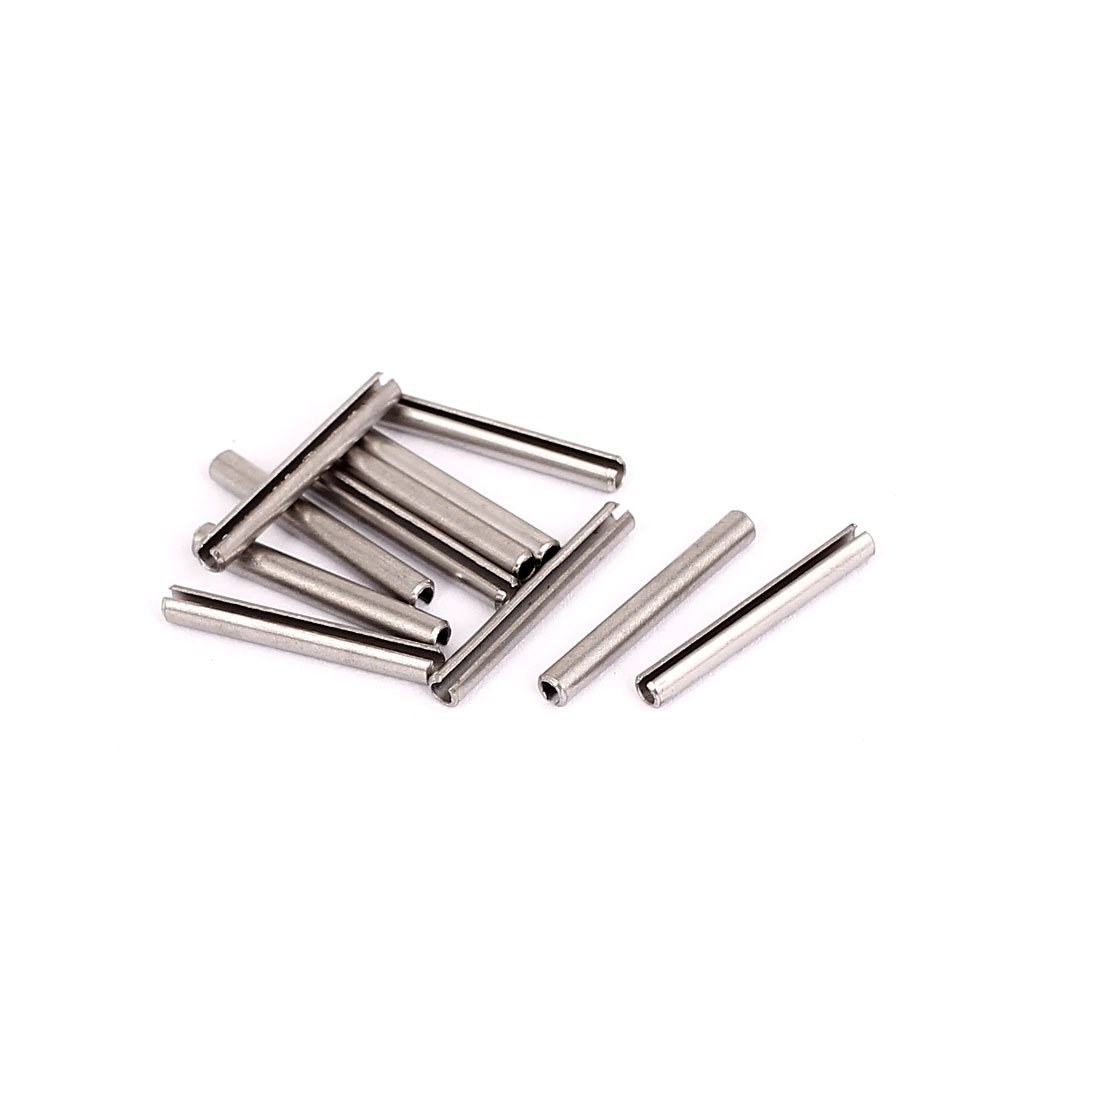 Sourcingmap a15081000ux0459 2.3 x 18 mm 304 Stainless Steel Split Spring Roll Dowel Pins - Silver Tone (10-Piece)